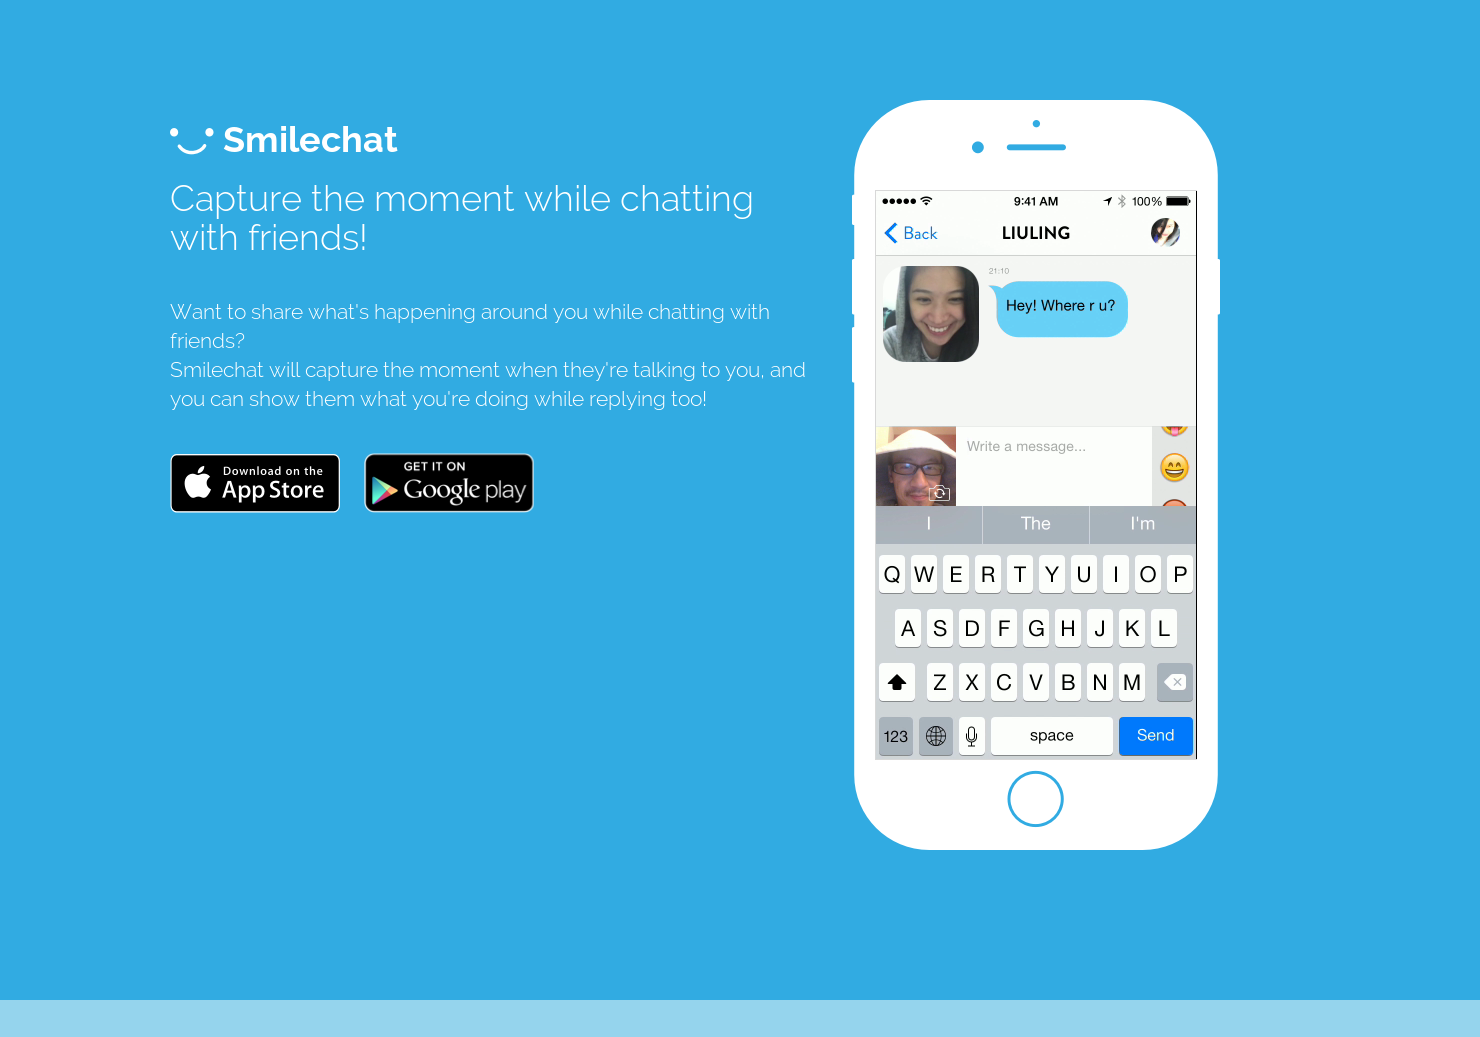 Smile - See your friends reaction while they reply to your chat